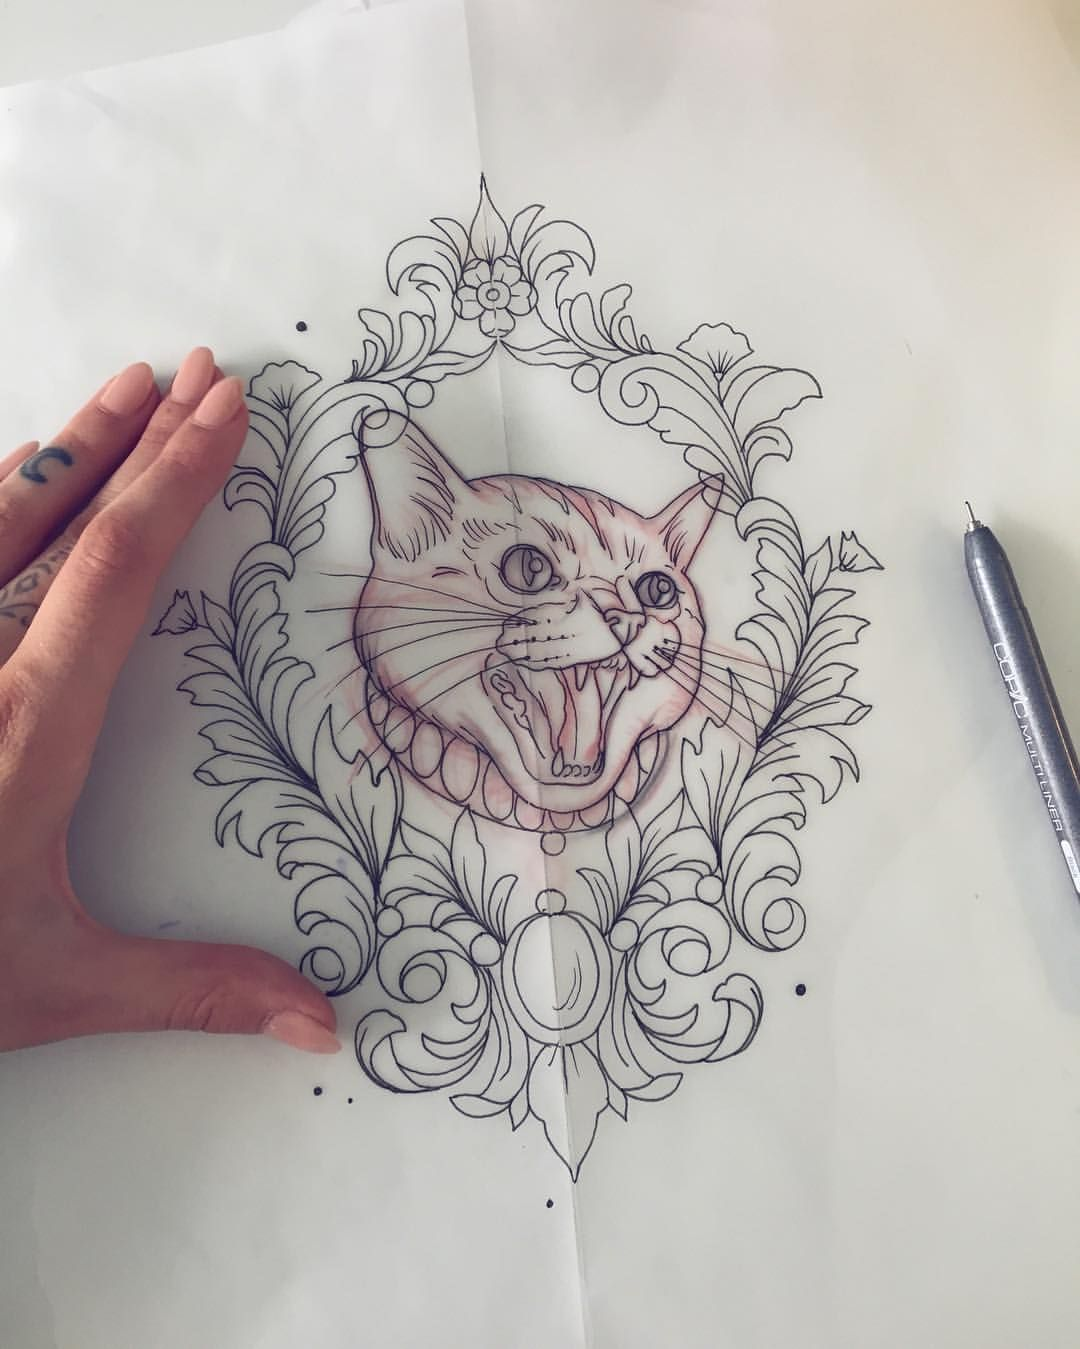 Heute Gibt Es Mal Eine Bose Katze Tattoo Sketch Drawing Tattoodesign Cat Neotraditional Illustration Tiny Cat Tattoo Tattoo Sketches Cat Face Drawing